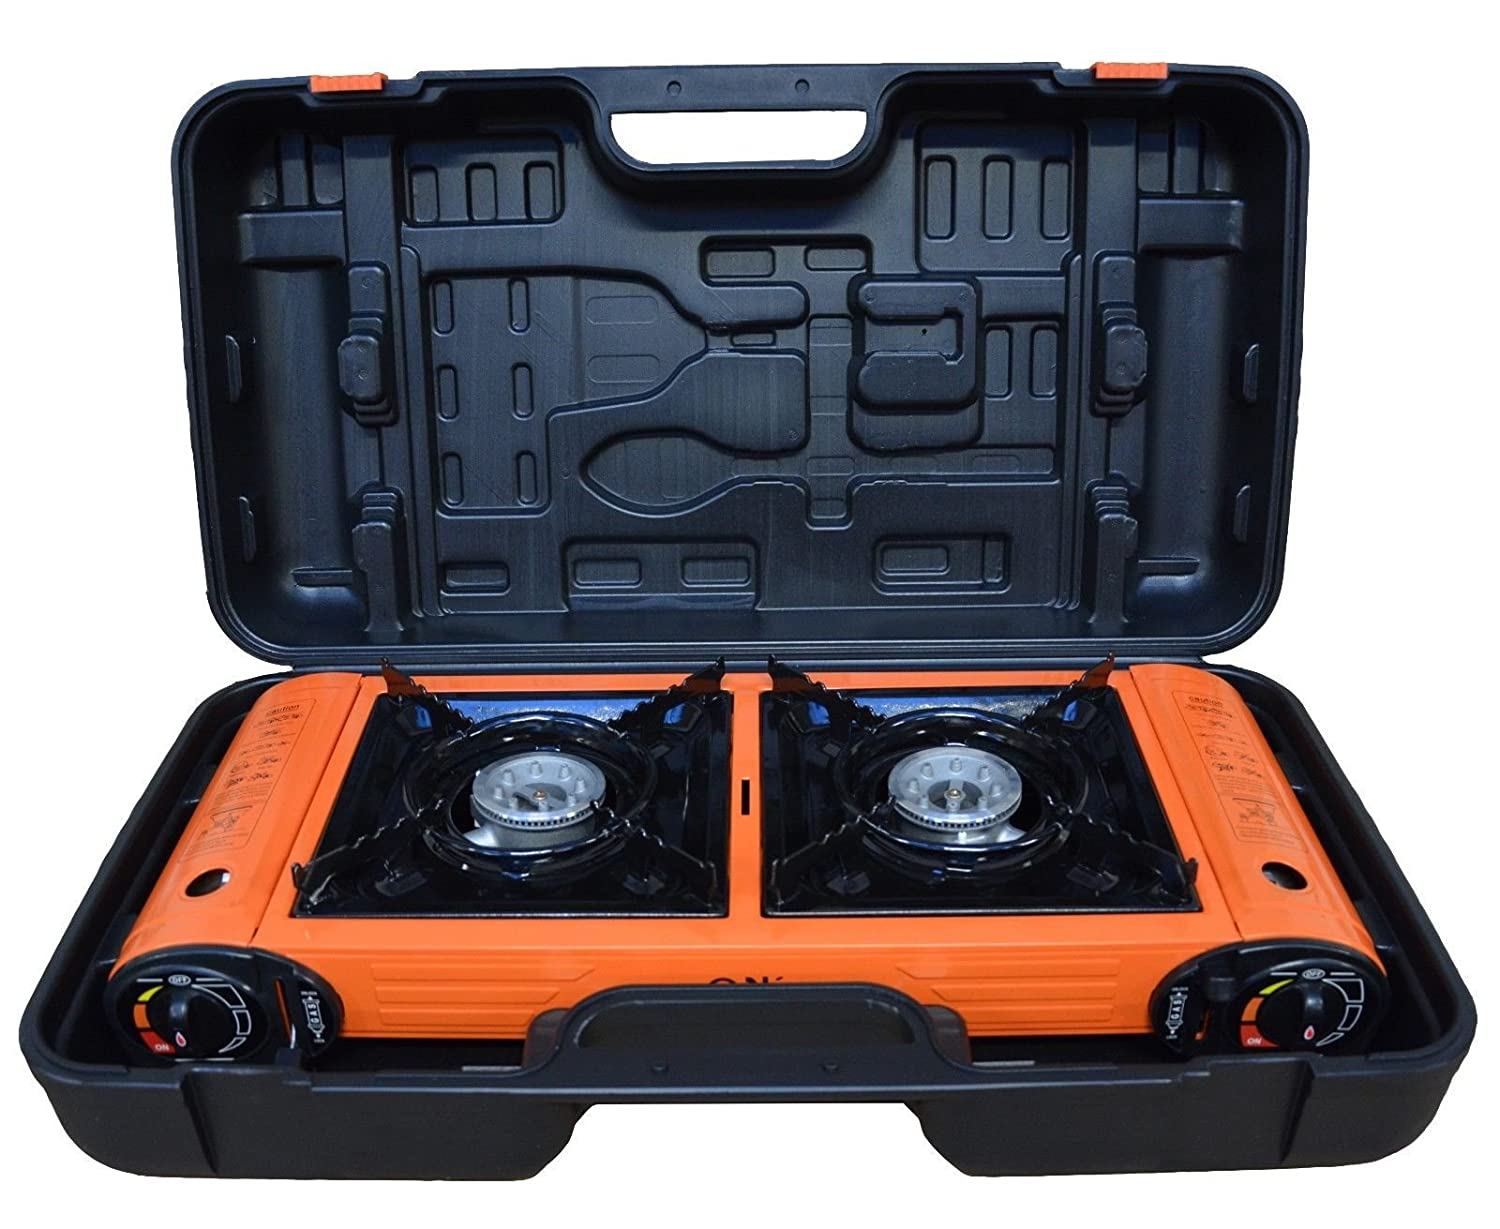 Camping Gas Stove Portable Double Burner Cooker Outdoor BBQ CASE Fontron Ltd